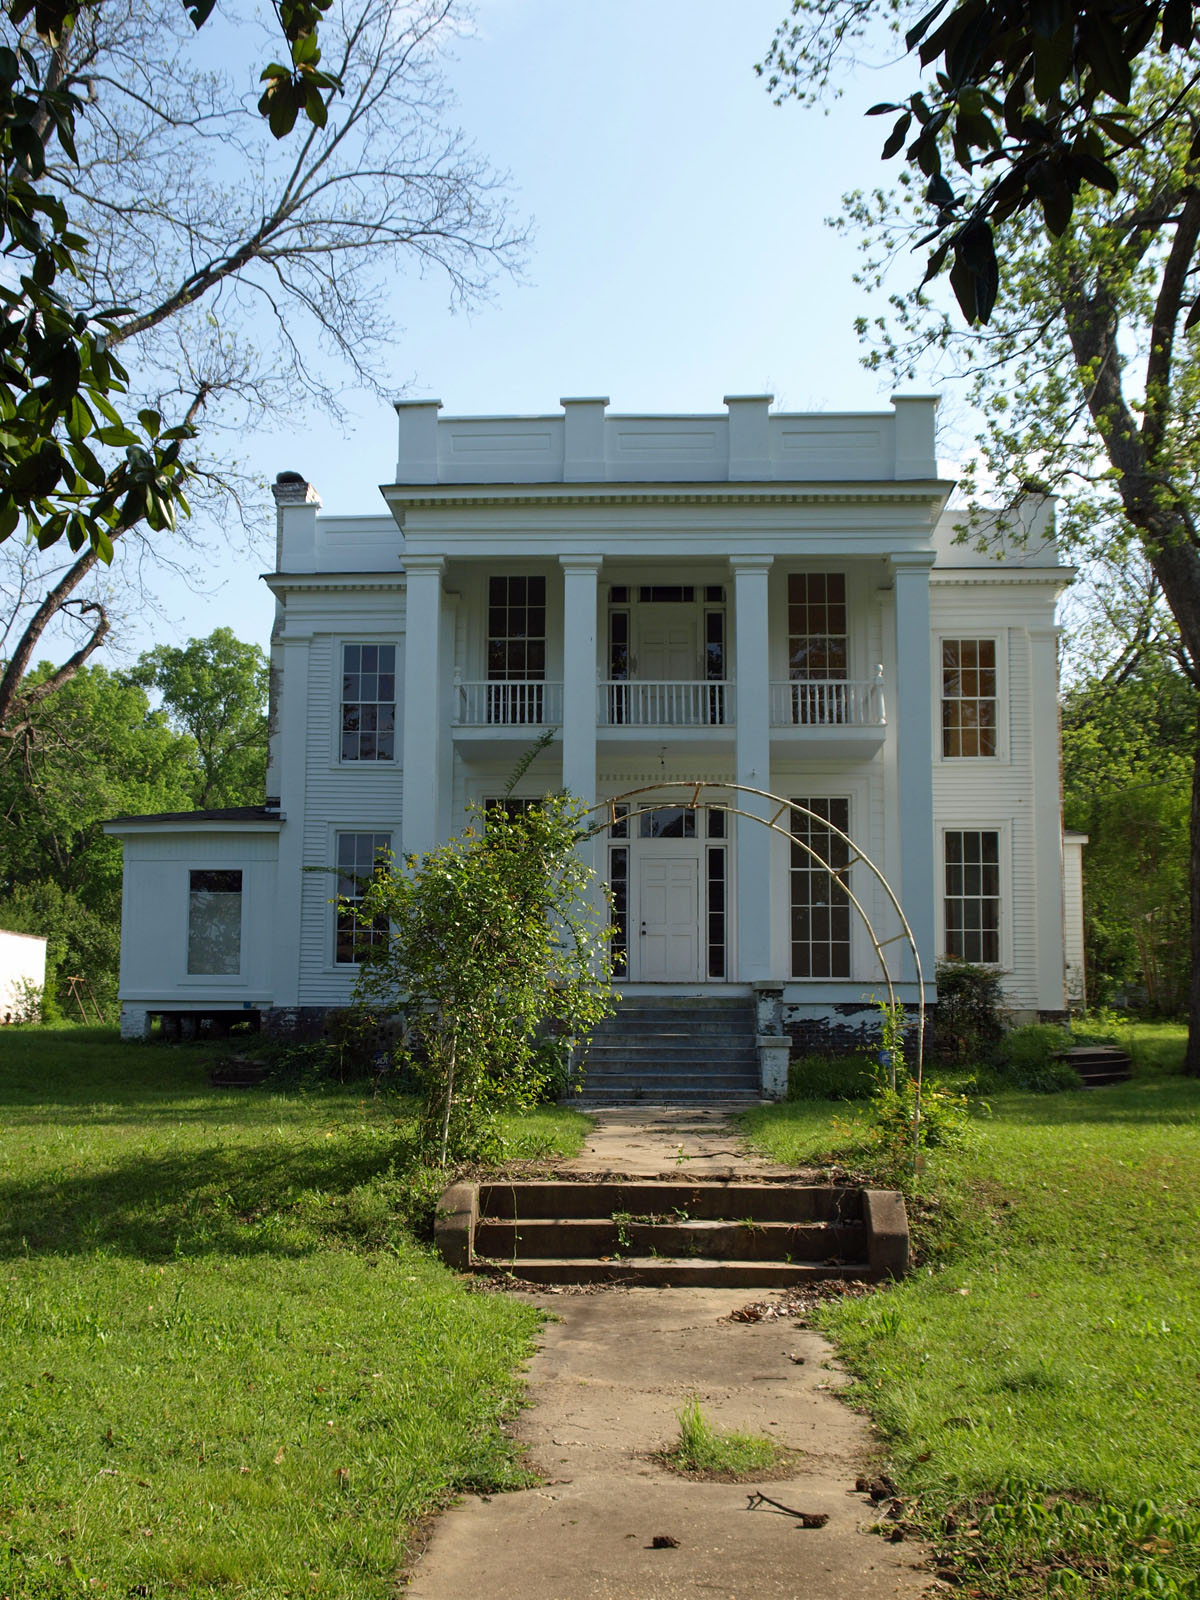 Mcbryde screws tyson house montgomery roadtrippers for Montgomery house